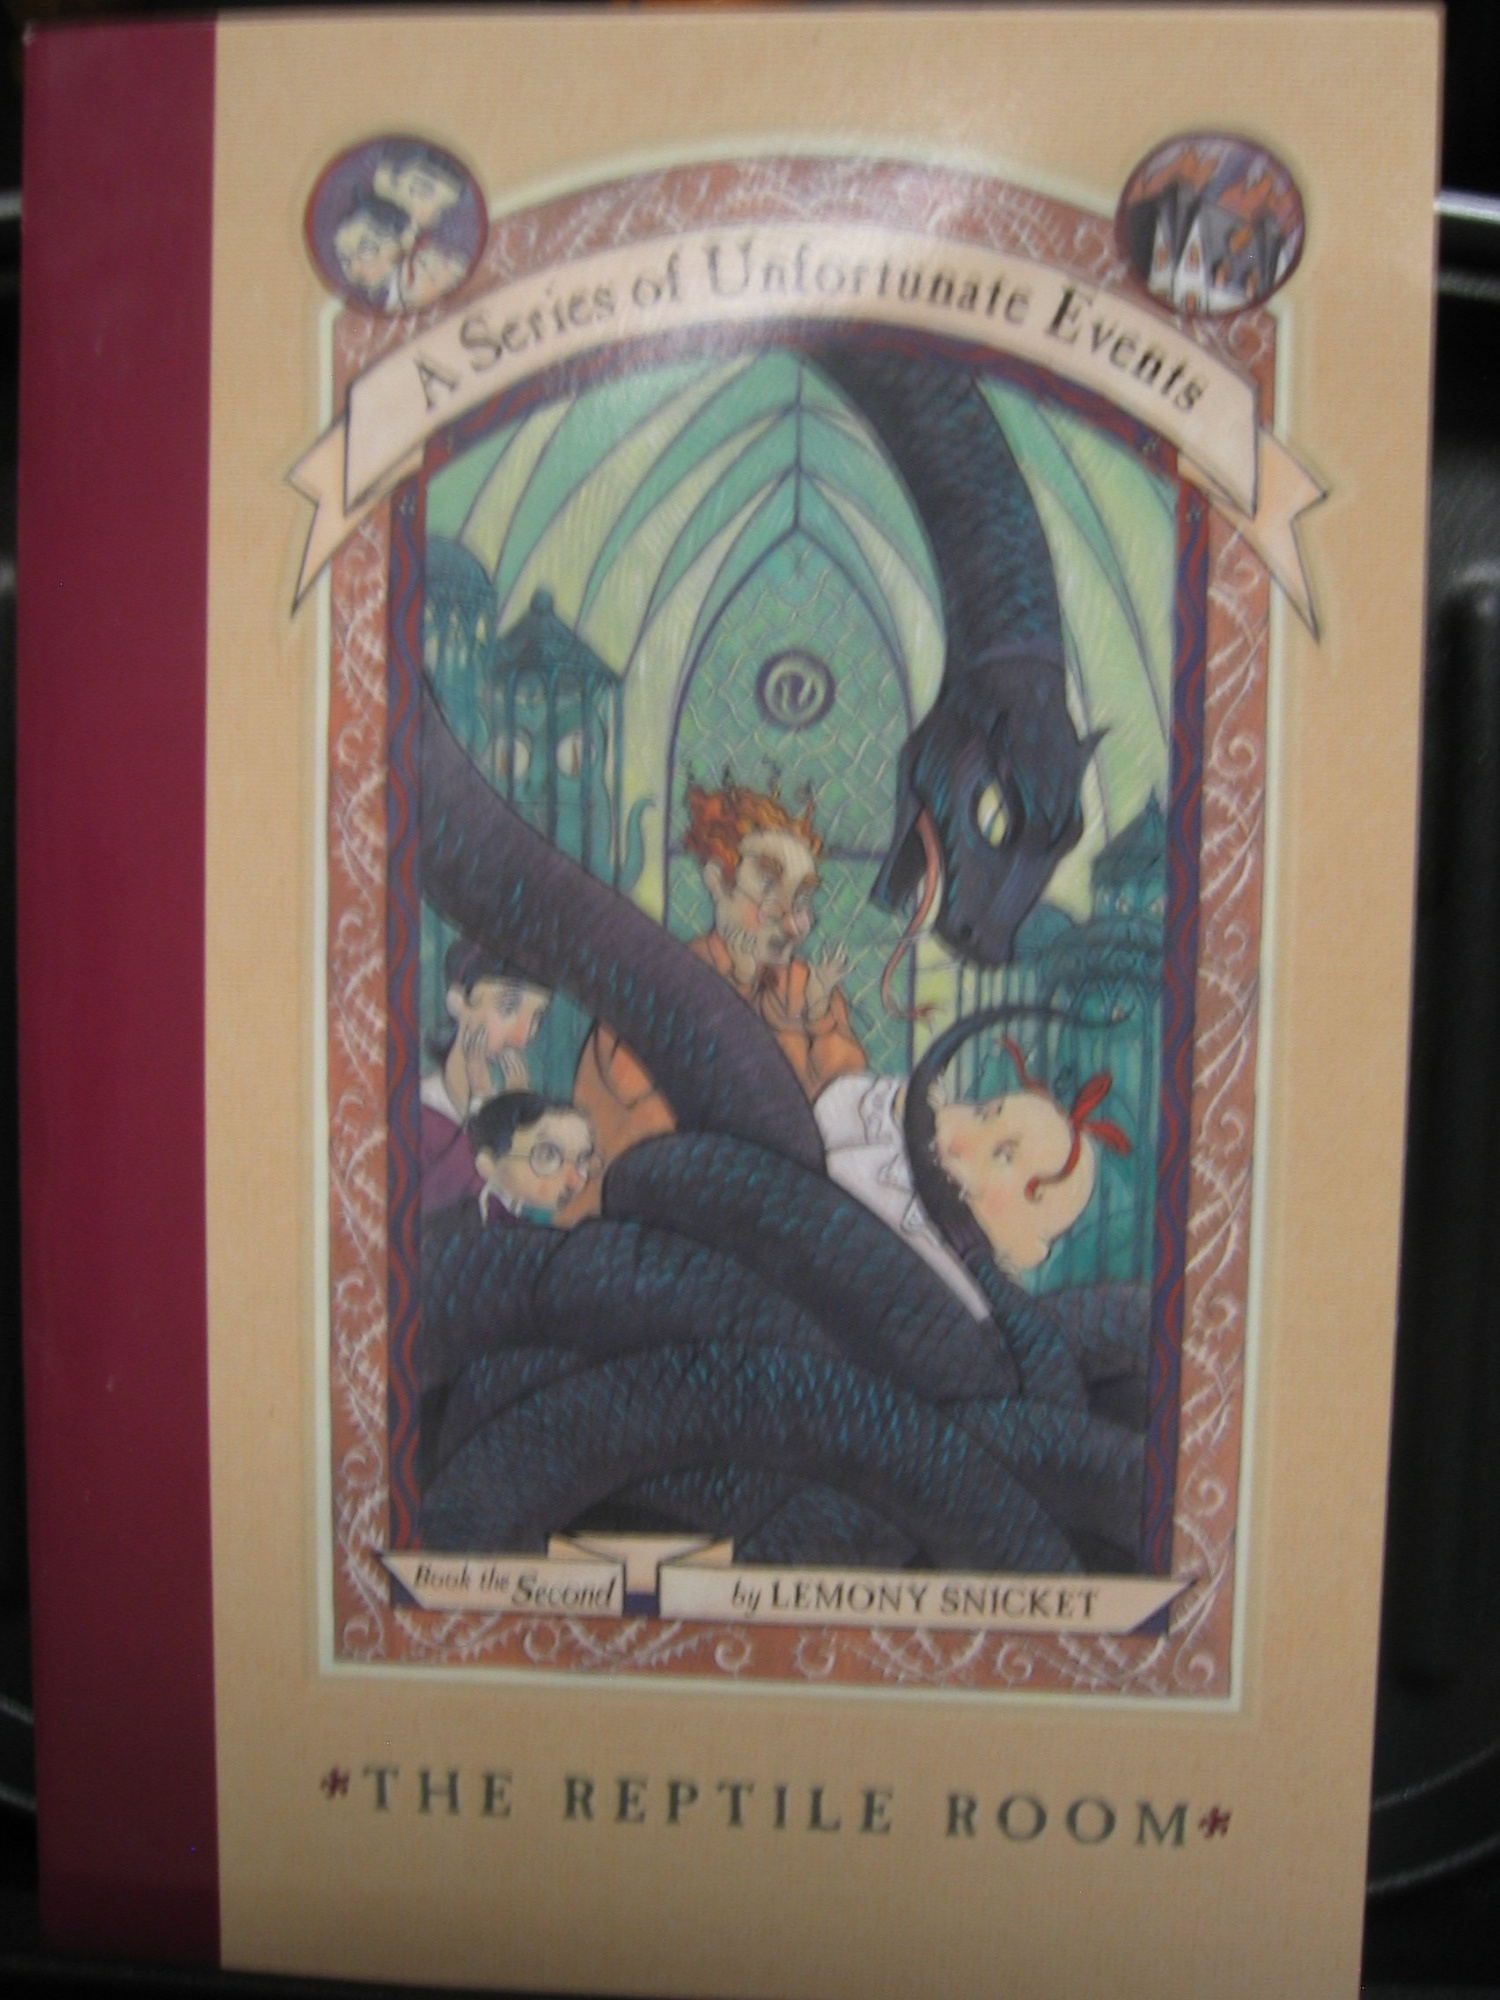 The Reptile Room, a Series of Unfortunate Events Book the 2rd